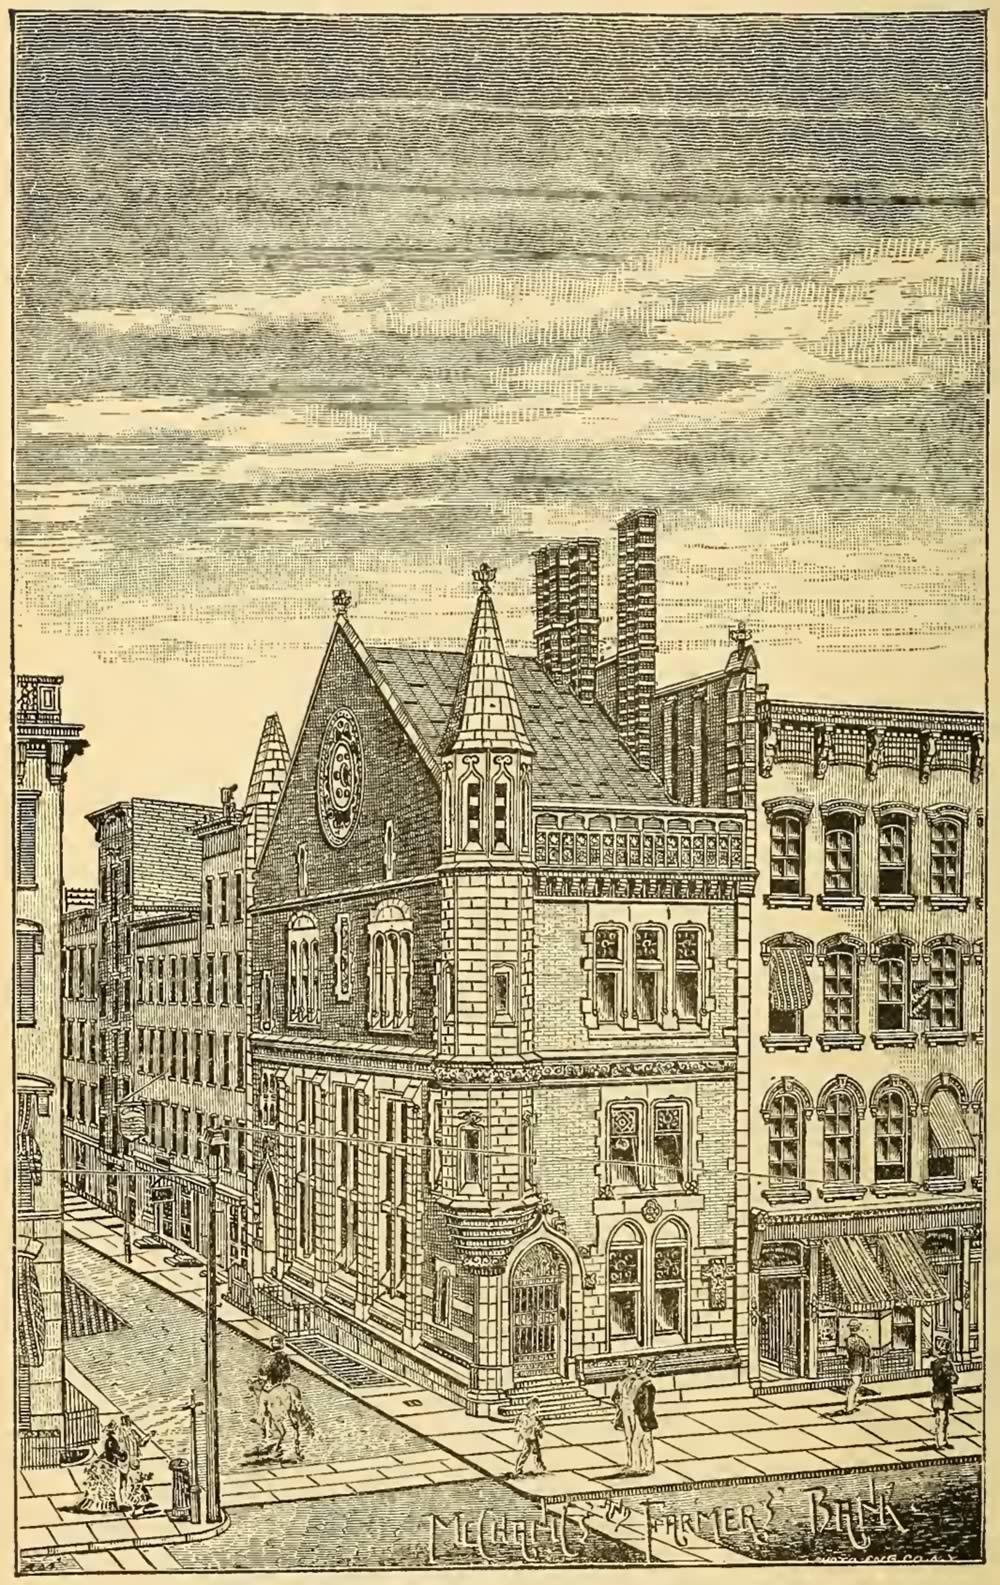 Mechanics and Farmers Bank History of Albany illustration